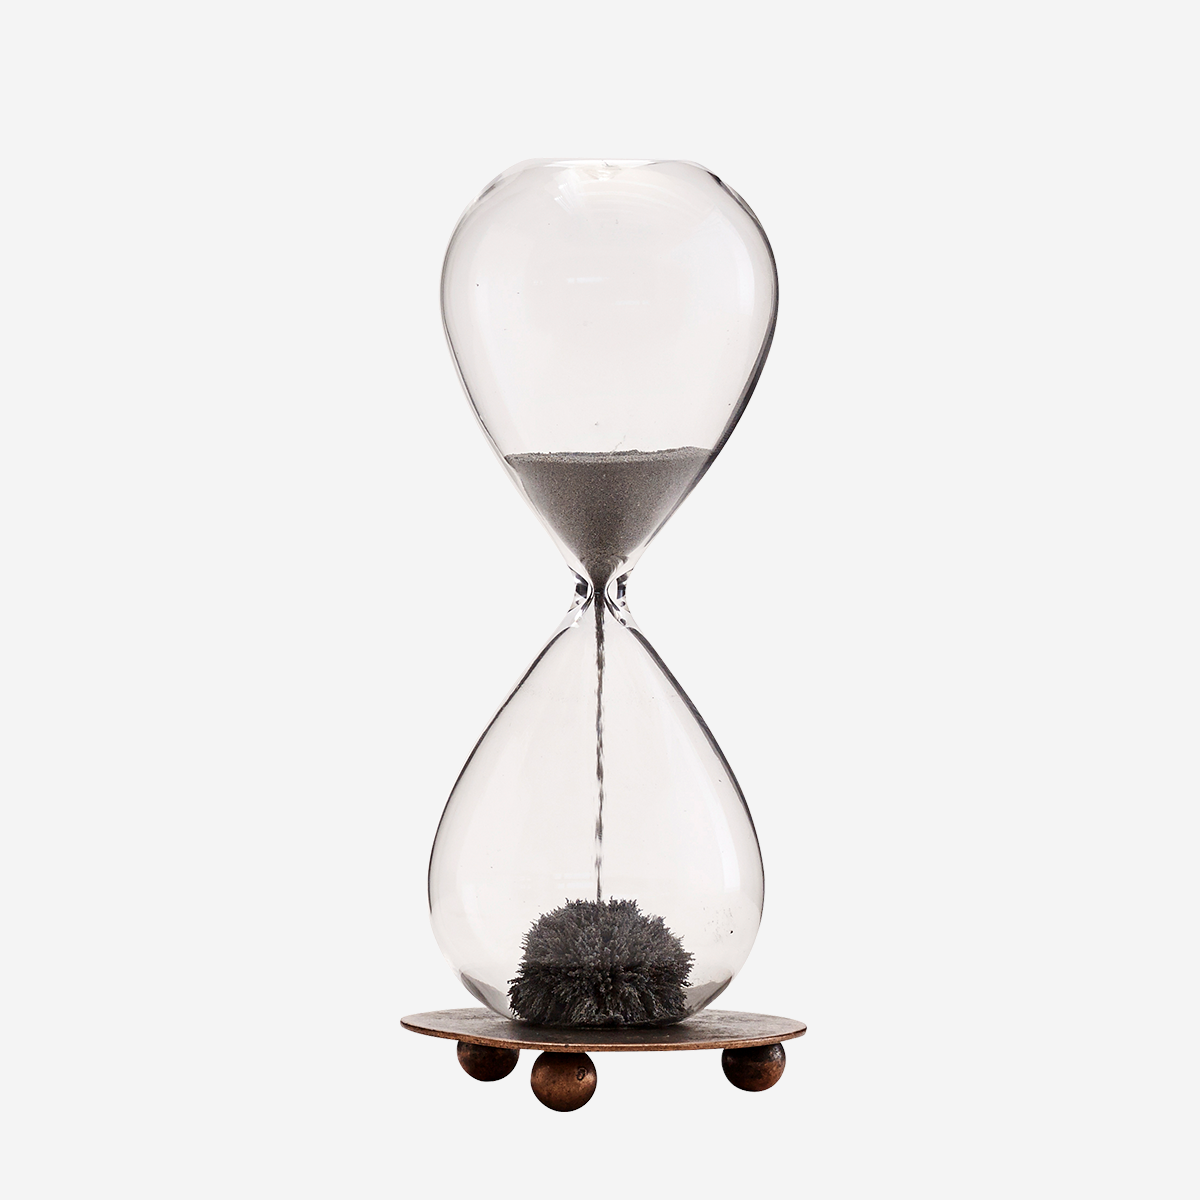 Hourglass w/ Magnet and Tray by Madam Stoltz